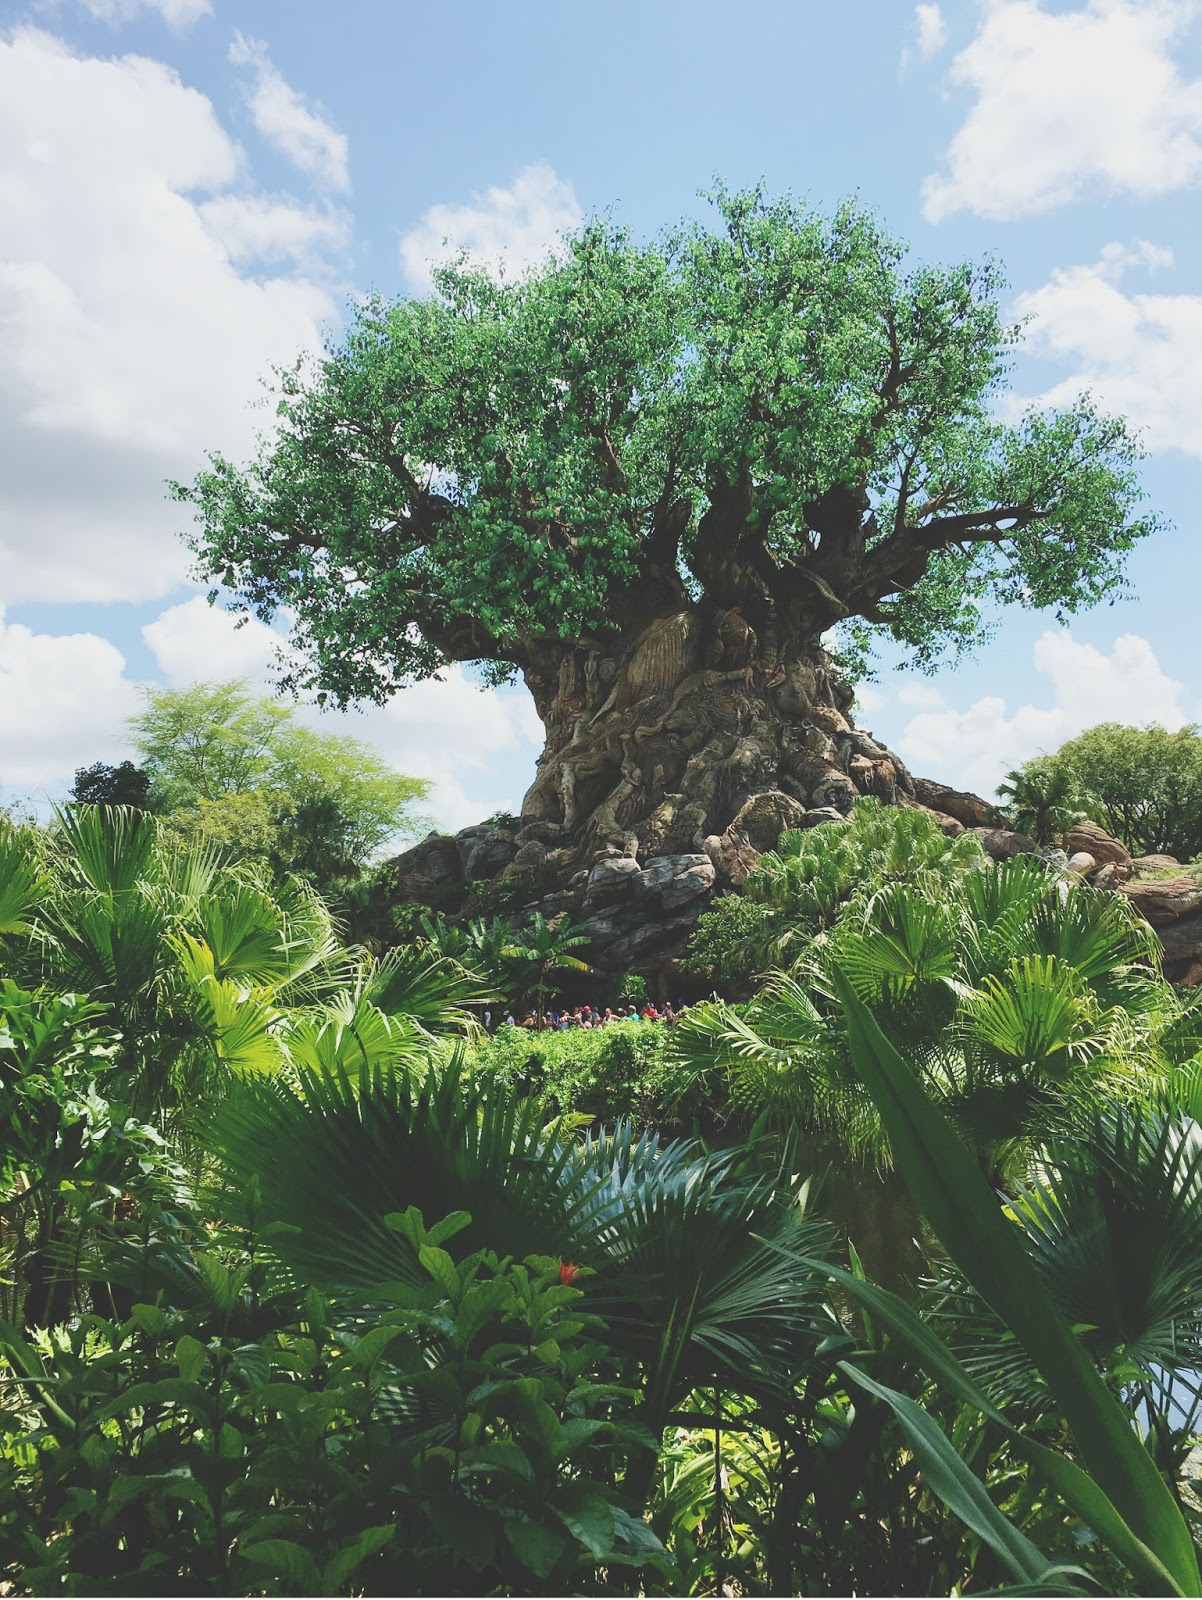 Tree of Life at Animal Kingdom in Disney World, Florida